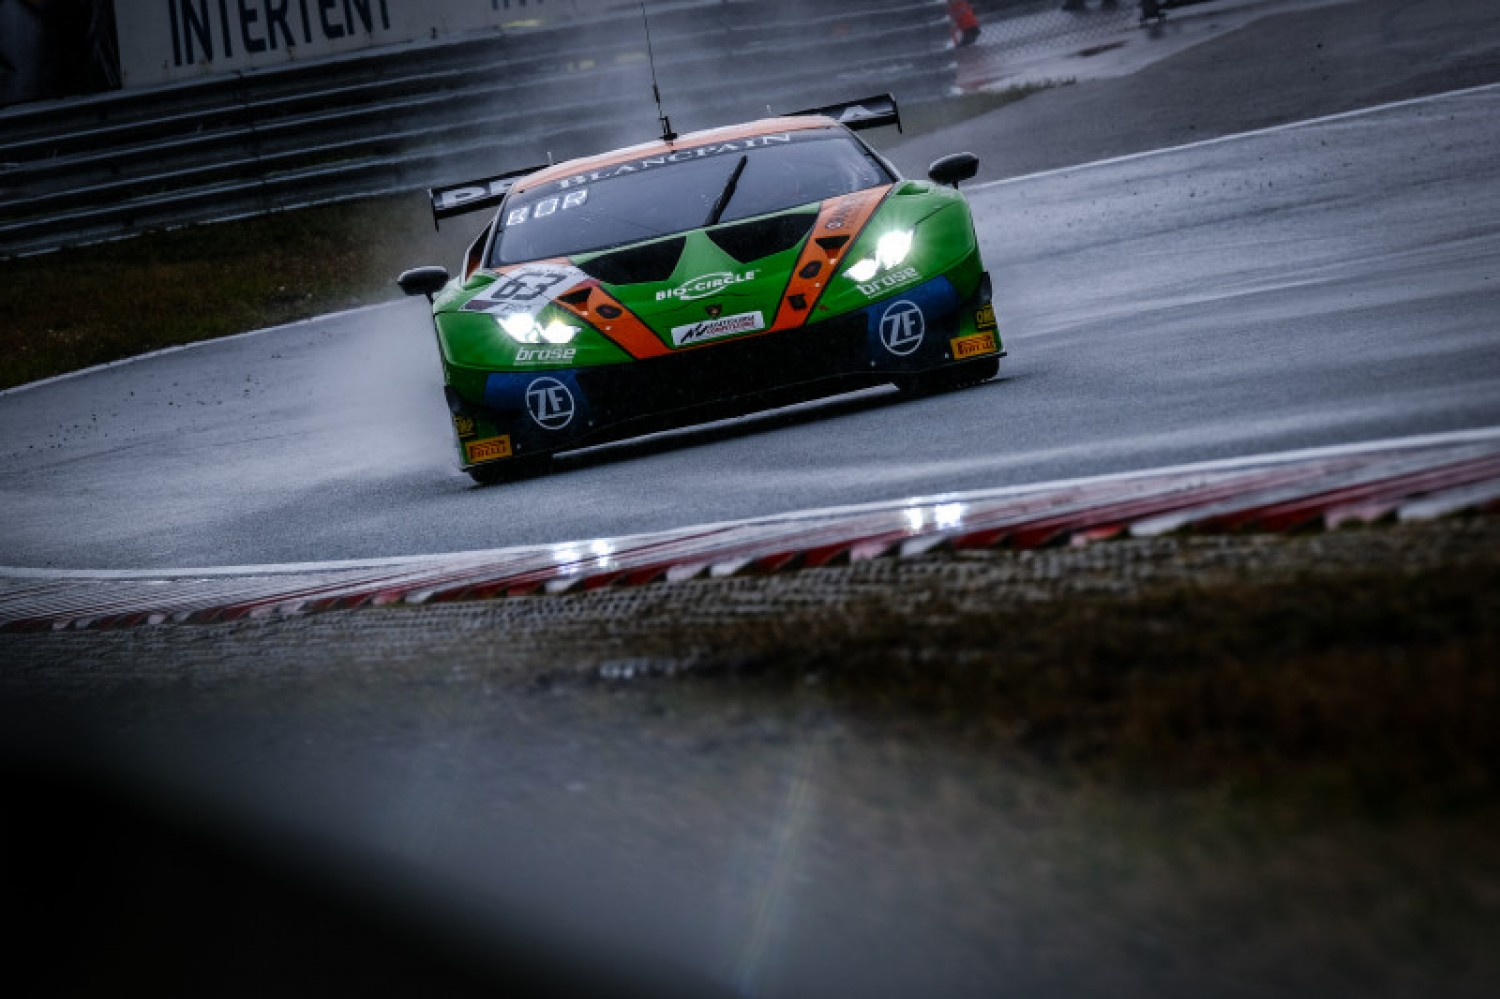 #63 Grasser Lamborghini disqualified from Q2 results at Zandvoort; car set to race under appeal